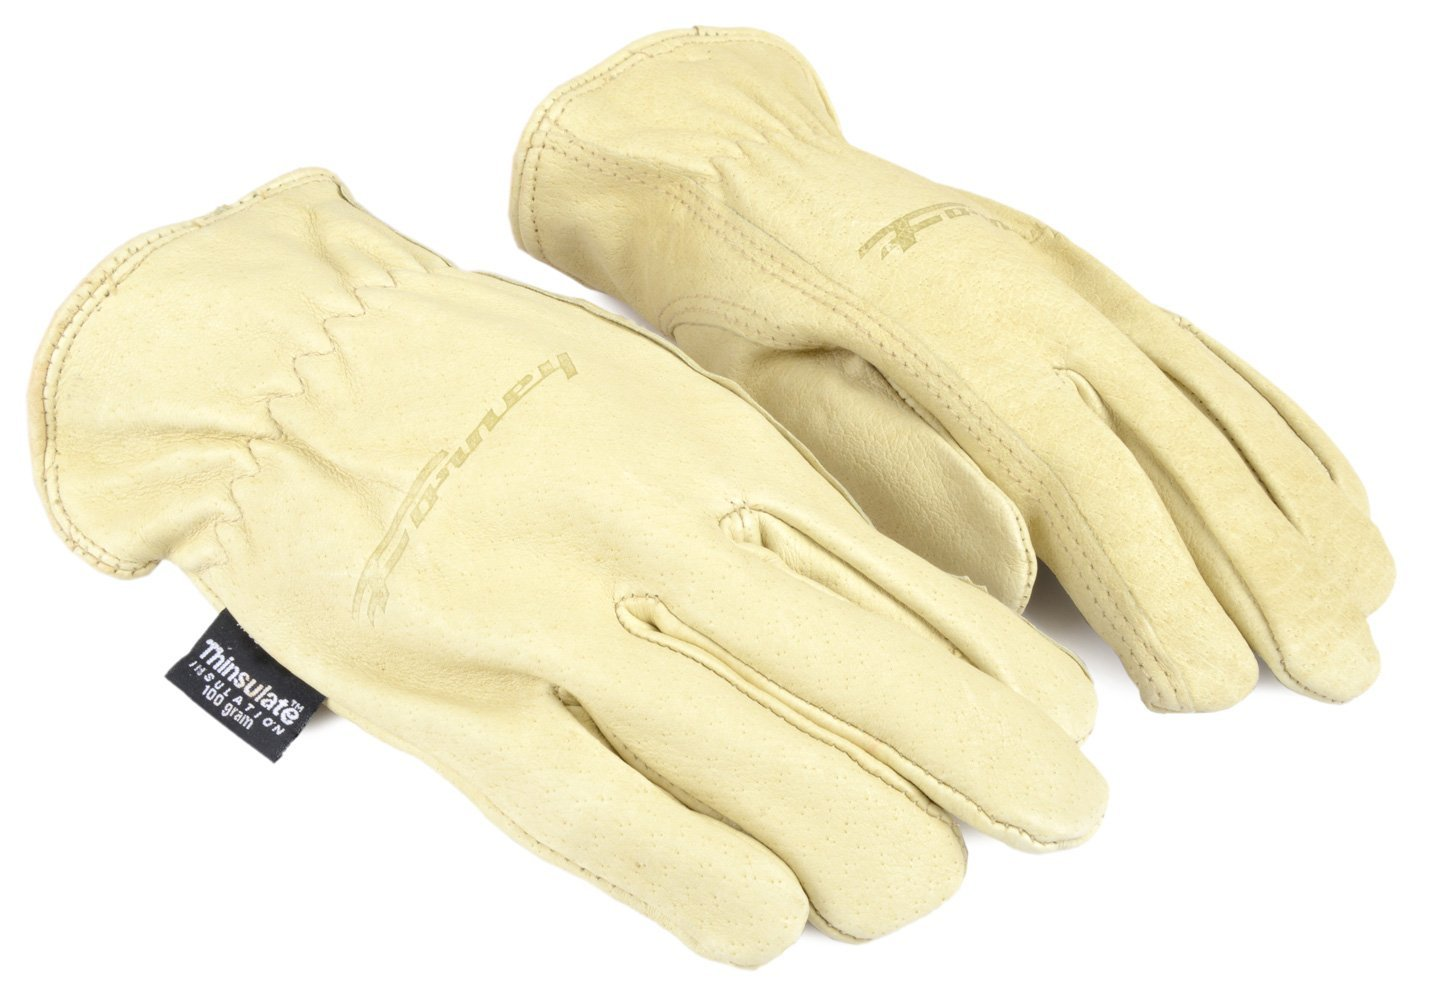 Forney 53166 Pigskin Leather Driver Premium Lined Women's Gloves, Small